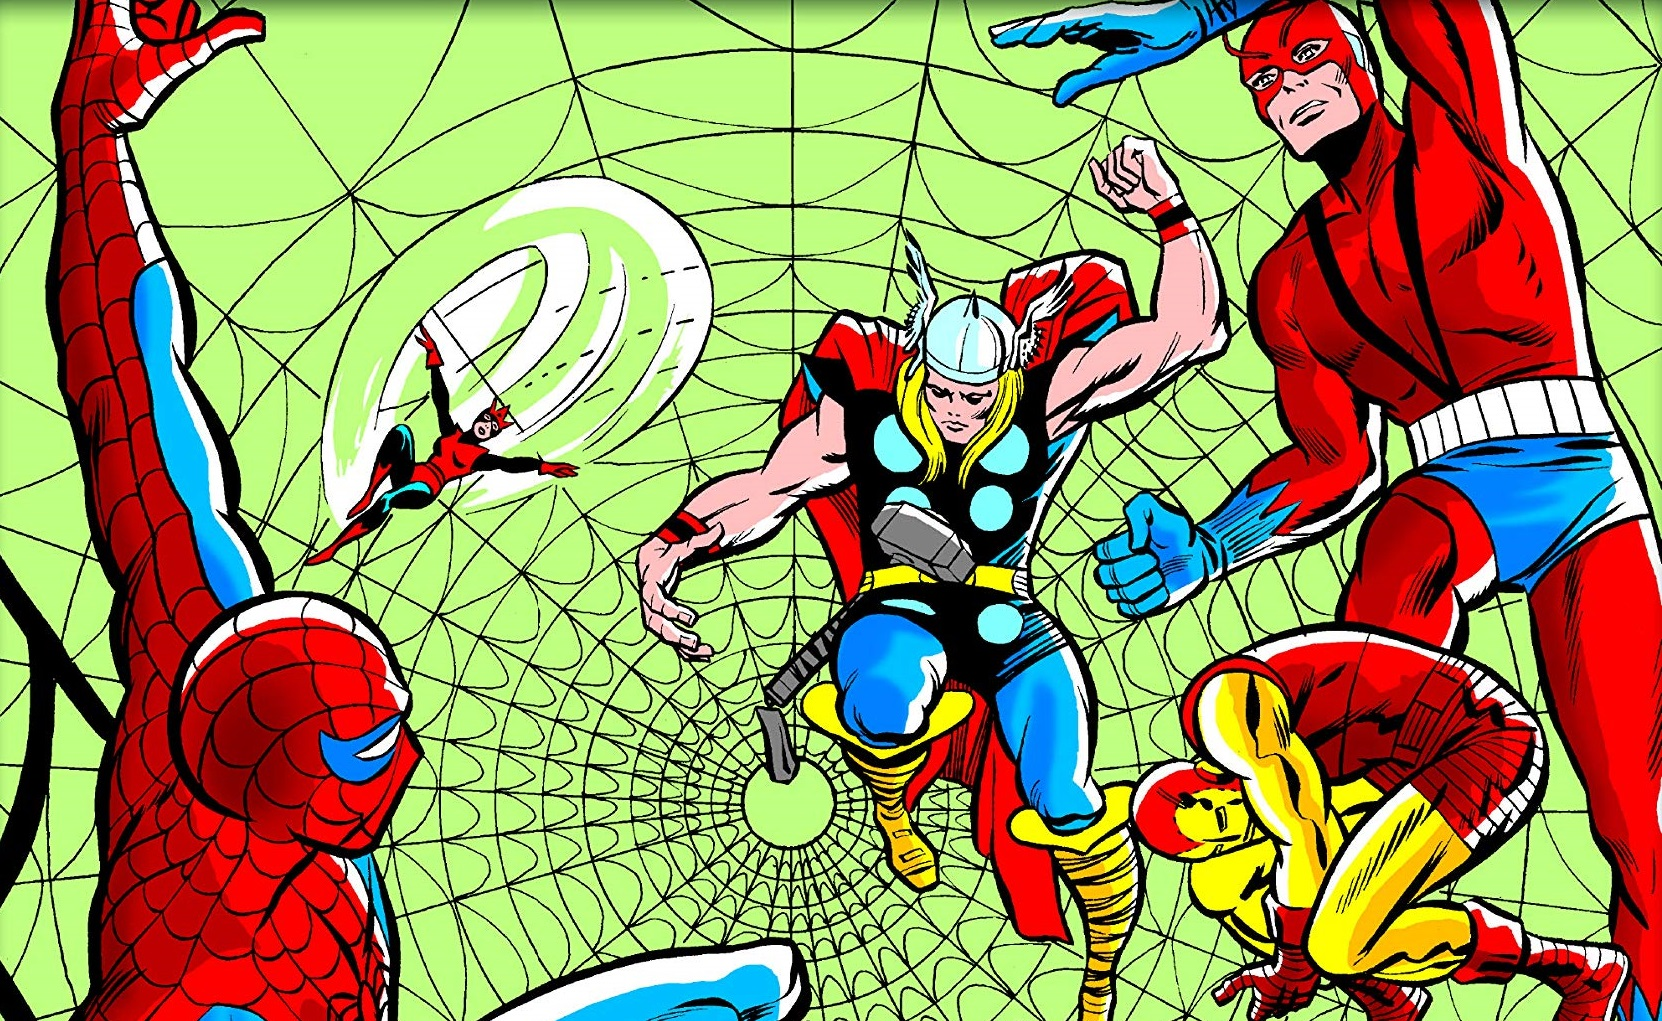 'Spider-Man Meets The Marvel Universe' is both fun and flummoxing.